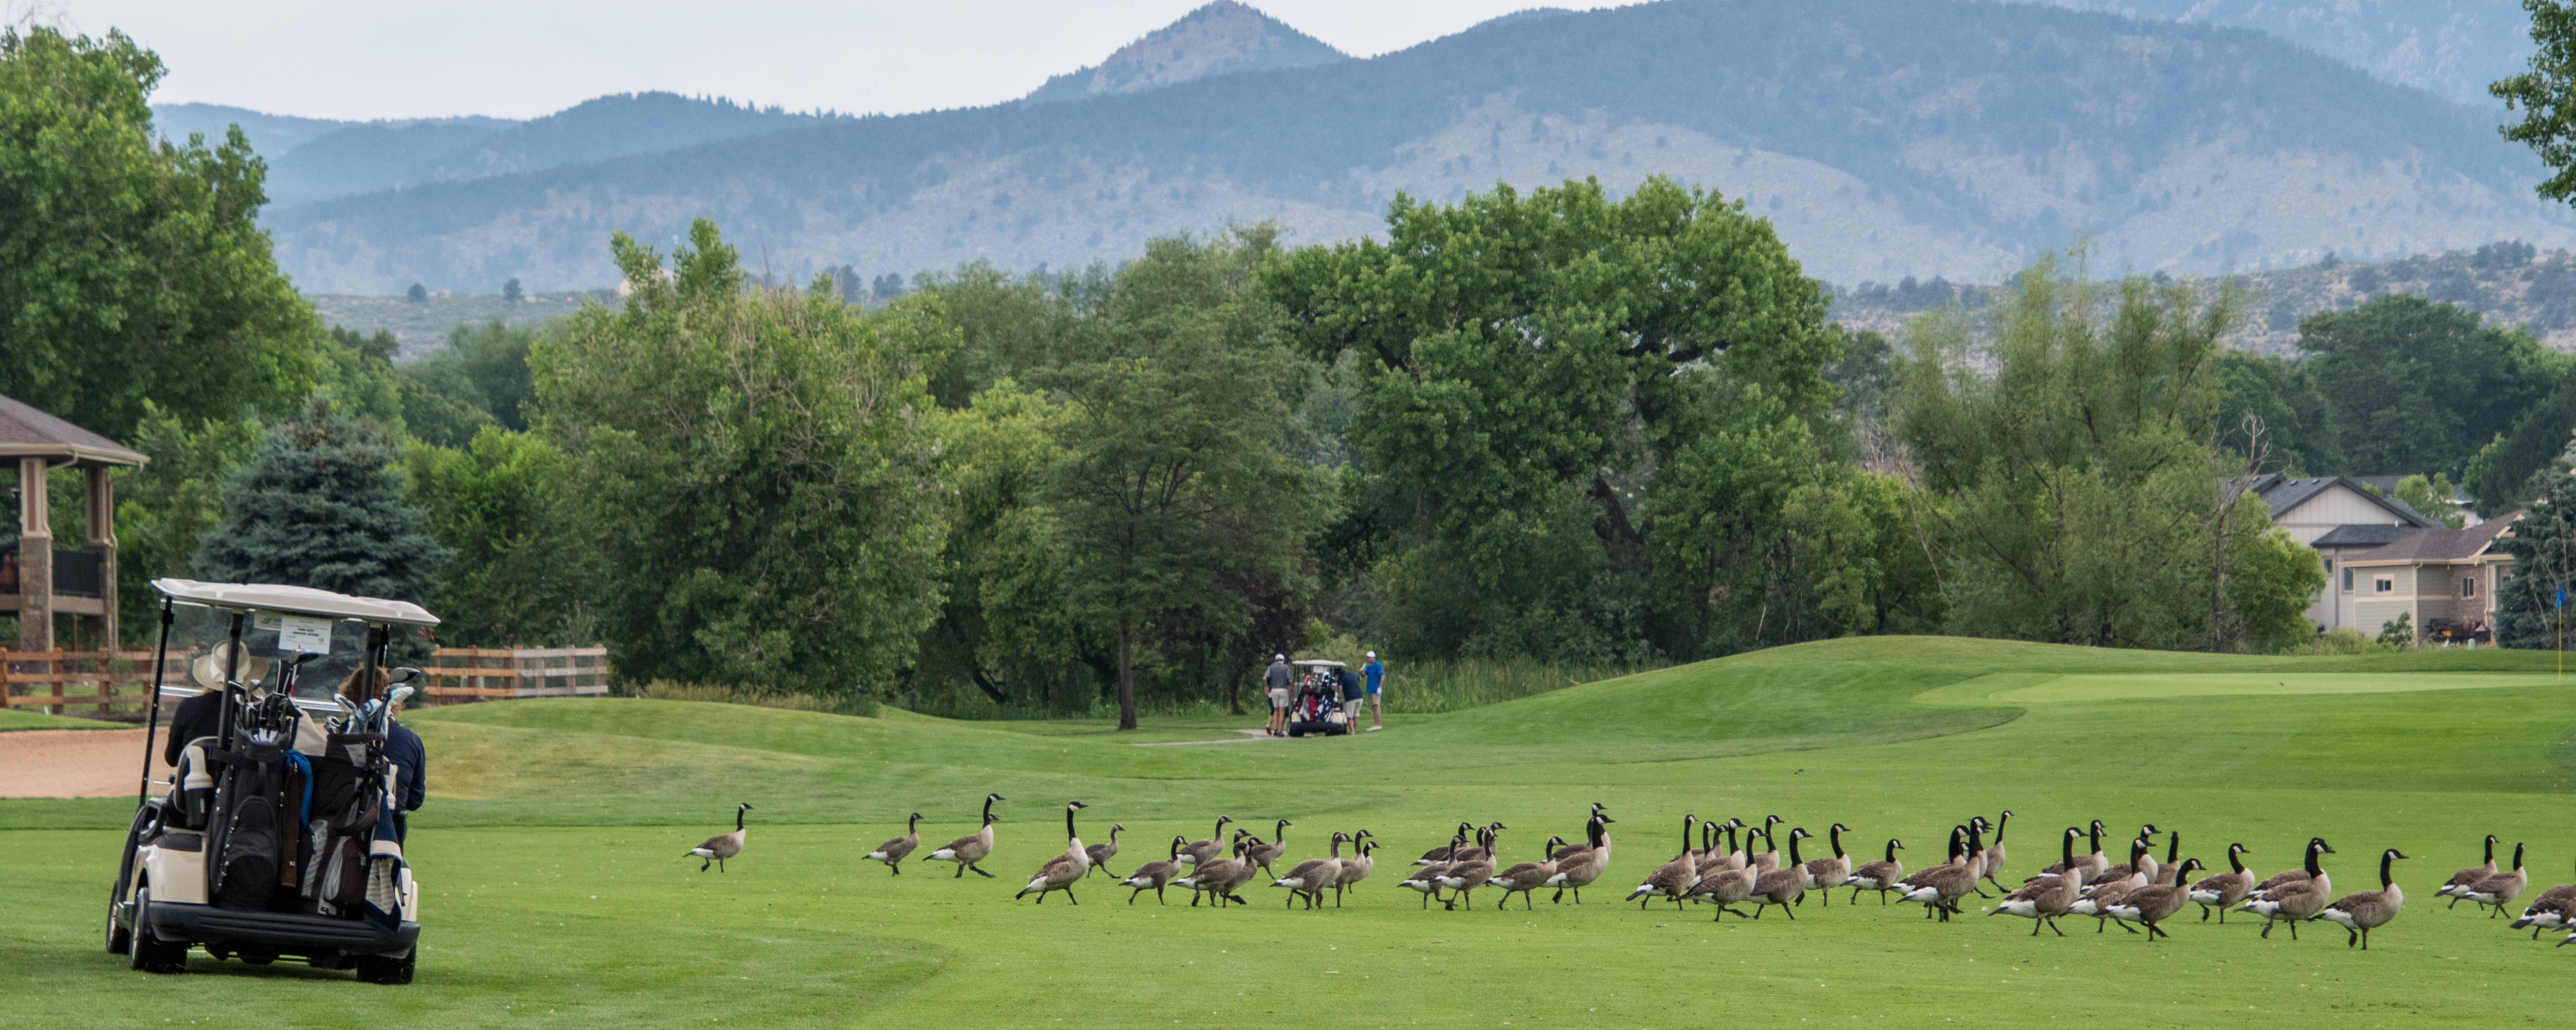 20180622LCCGolf DSC_5192untitled